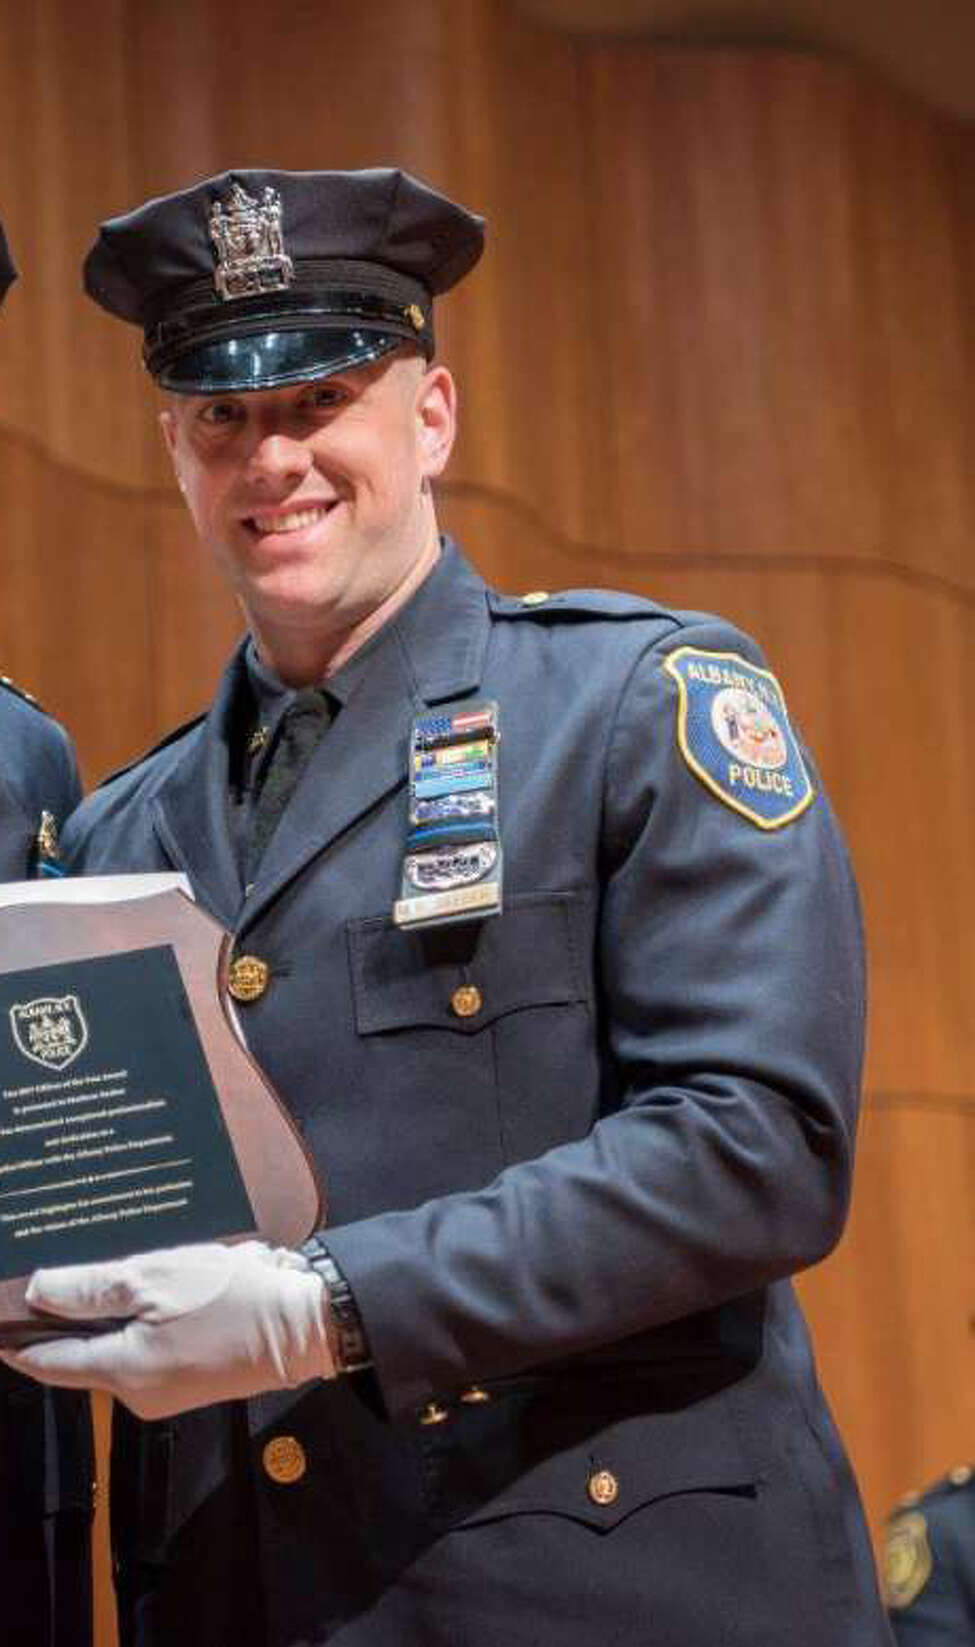 Matthew Seeber receives the Officer of the Year Award from the Albany Police Department on May 15, 2018.